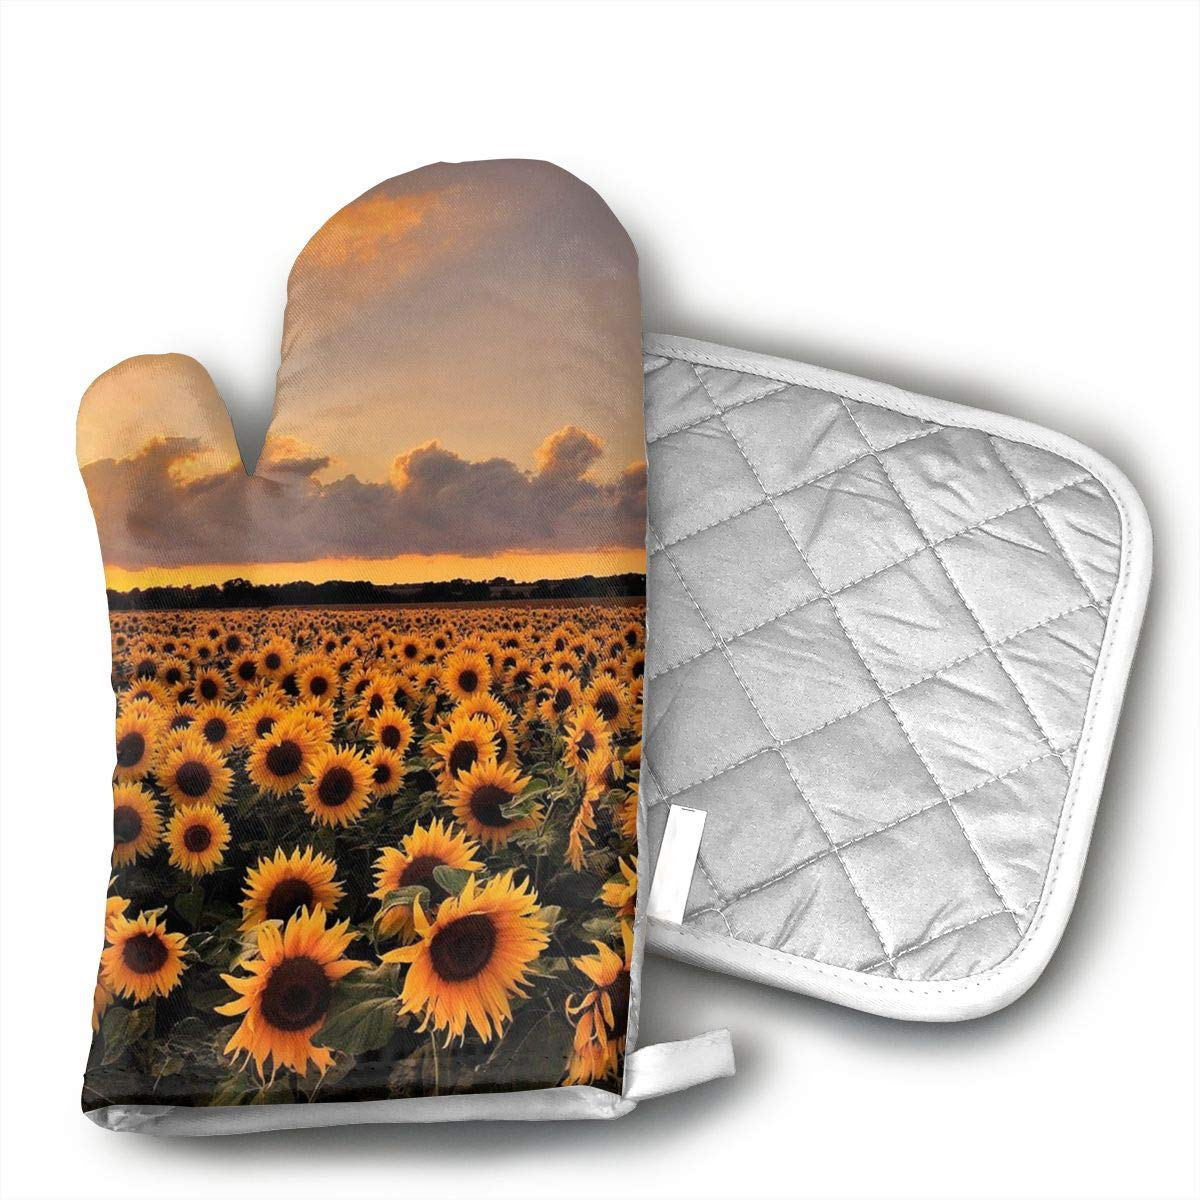 Xixioou Sunflower Oven Mitts Kitchen Gloves Potholder Kitchen Set, Heat Resistant, Oven Gloves Pot Holders 2pcs Set BBQ Cooking Baking Grilling